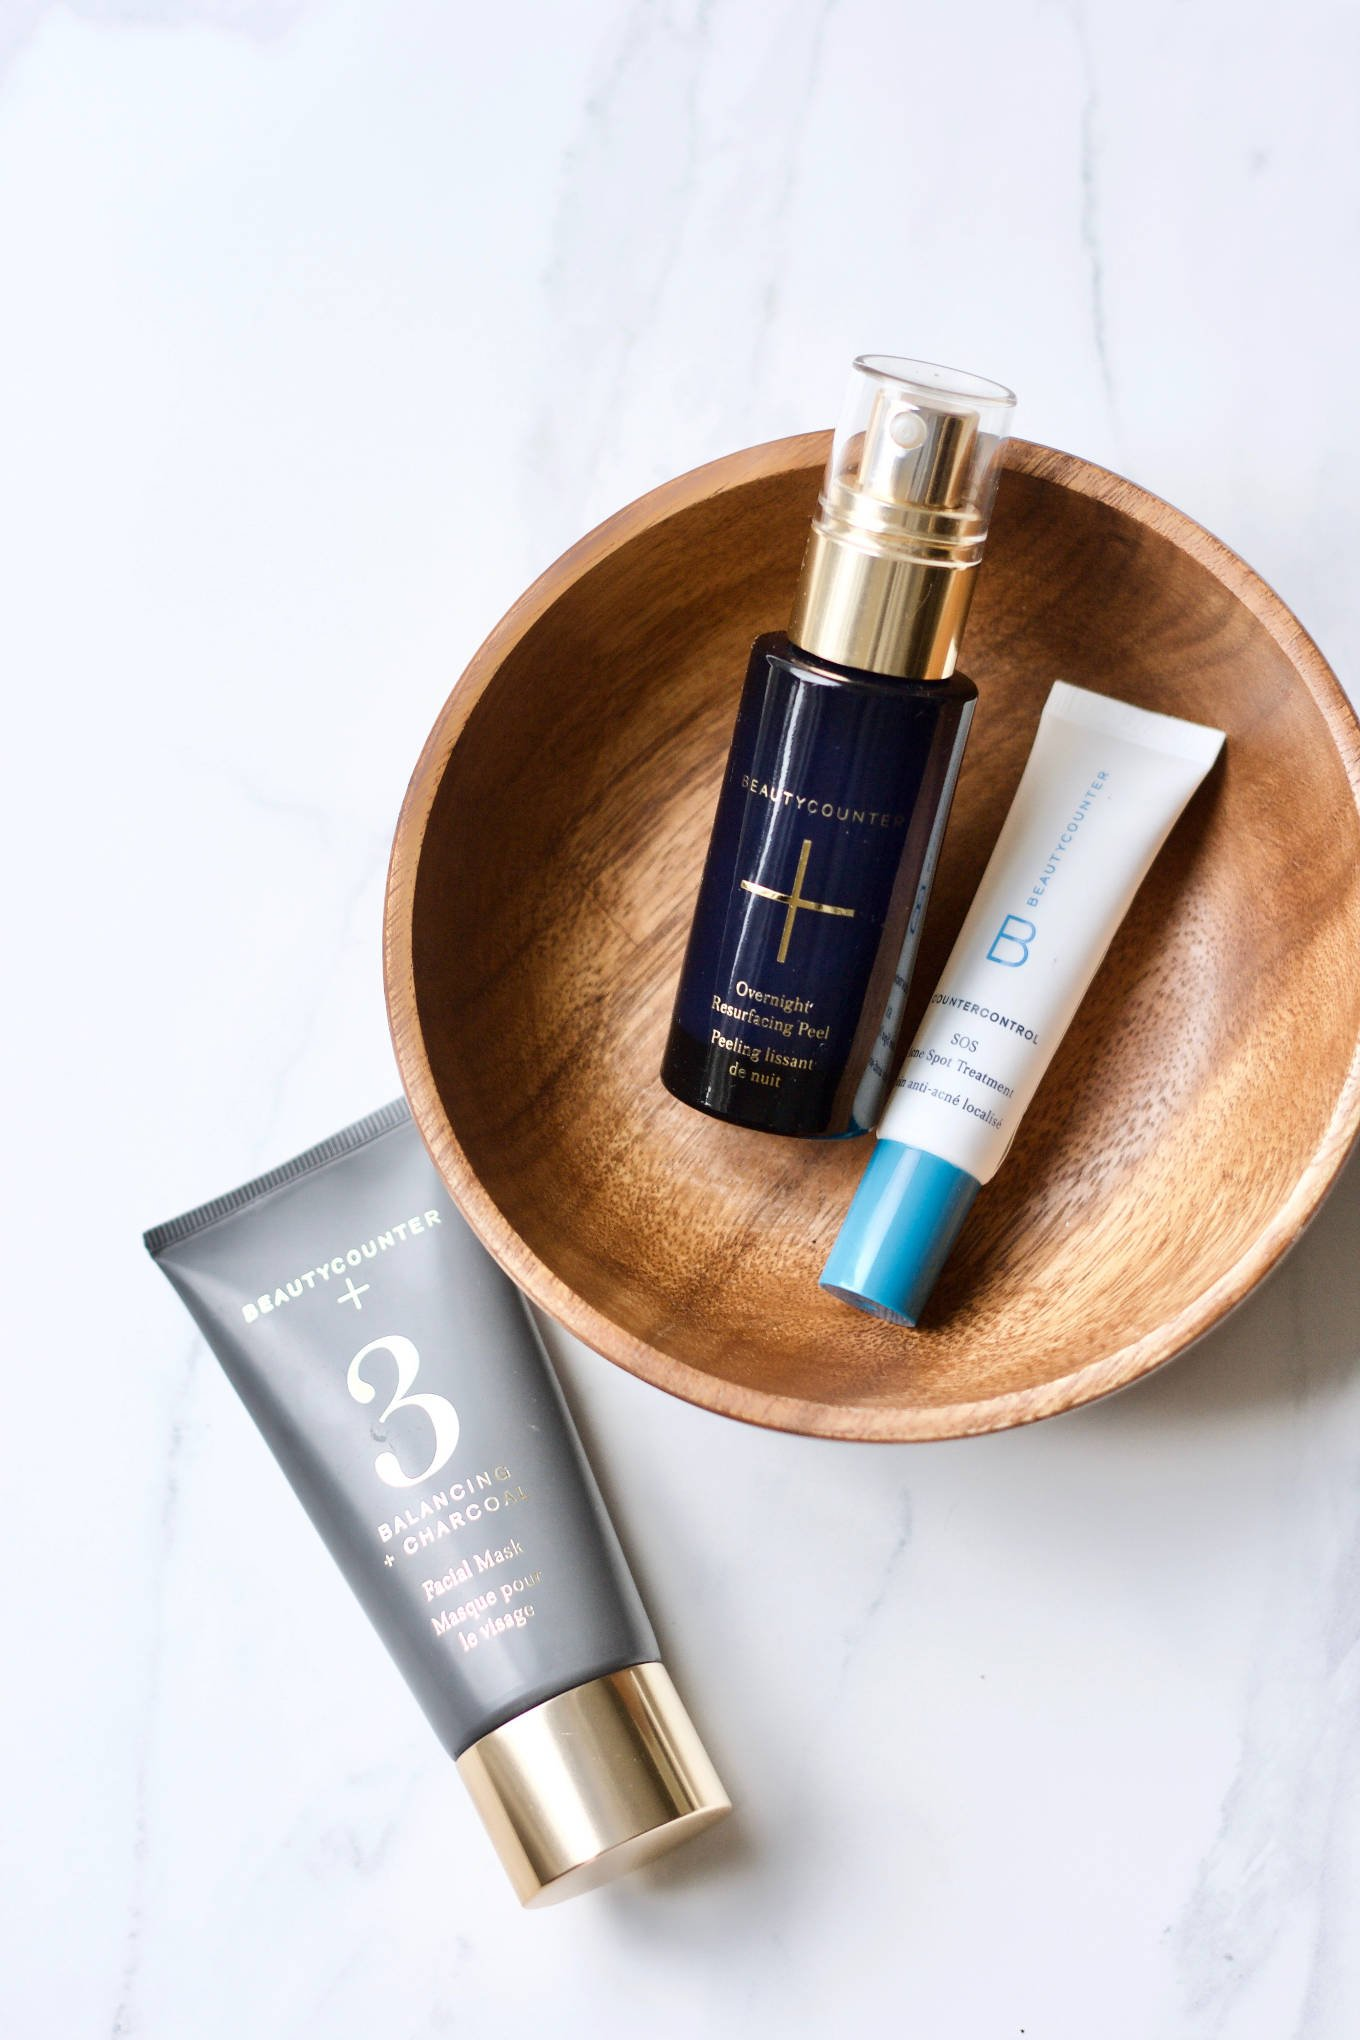 The 3 treatments from Beautycounter that everyone should have: overnight resurfacing peel, #3 charcoal mask, and SOS acne spot treatment.